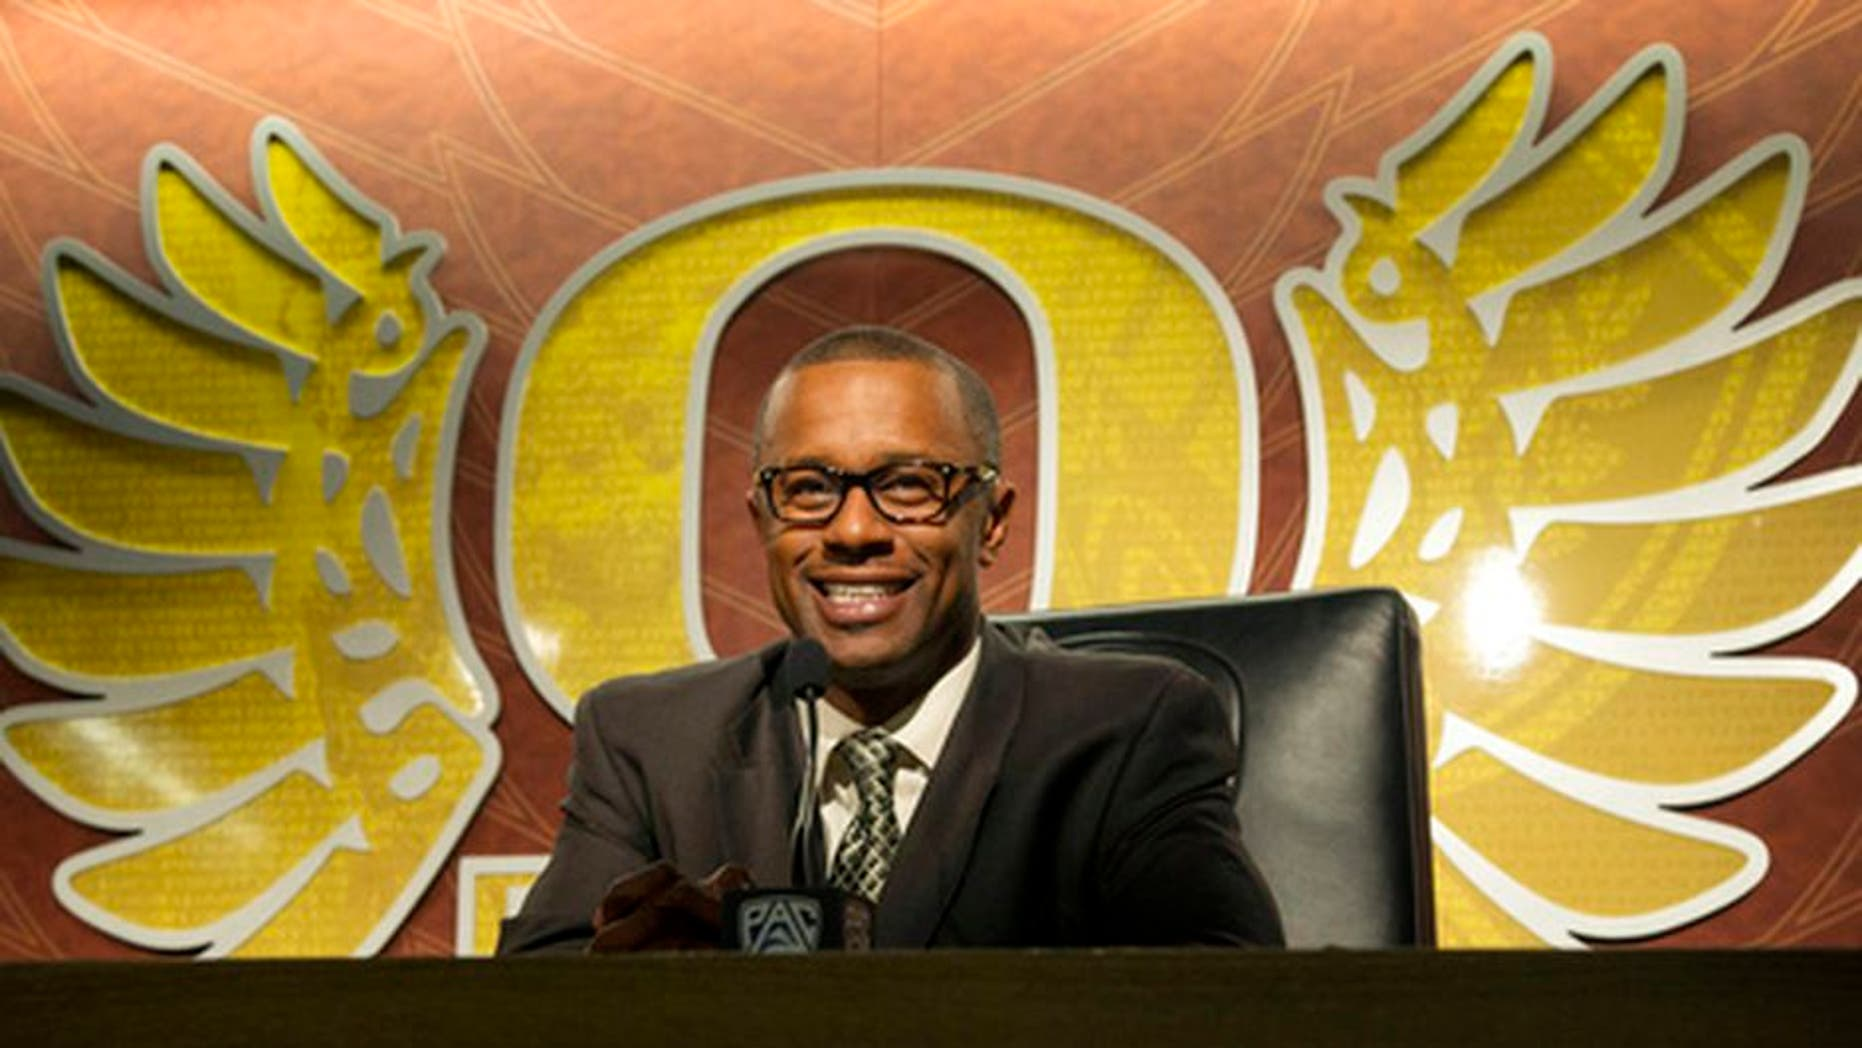 Oregon coach Willie Taggart discusses his first recruiting class for the Ducks during a an NCAA college football news conference on national signing day at the Hatfield-Dowling Complex, Wednesday, Feb. 1, 2017, in Eugene, Ore.. Taggart replaced Mark Helrich who was fired after the 2016 season. (Andy Nelson/The Register-Guard via AP)